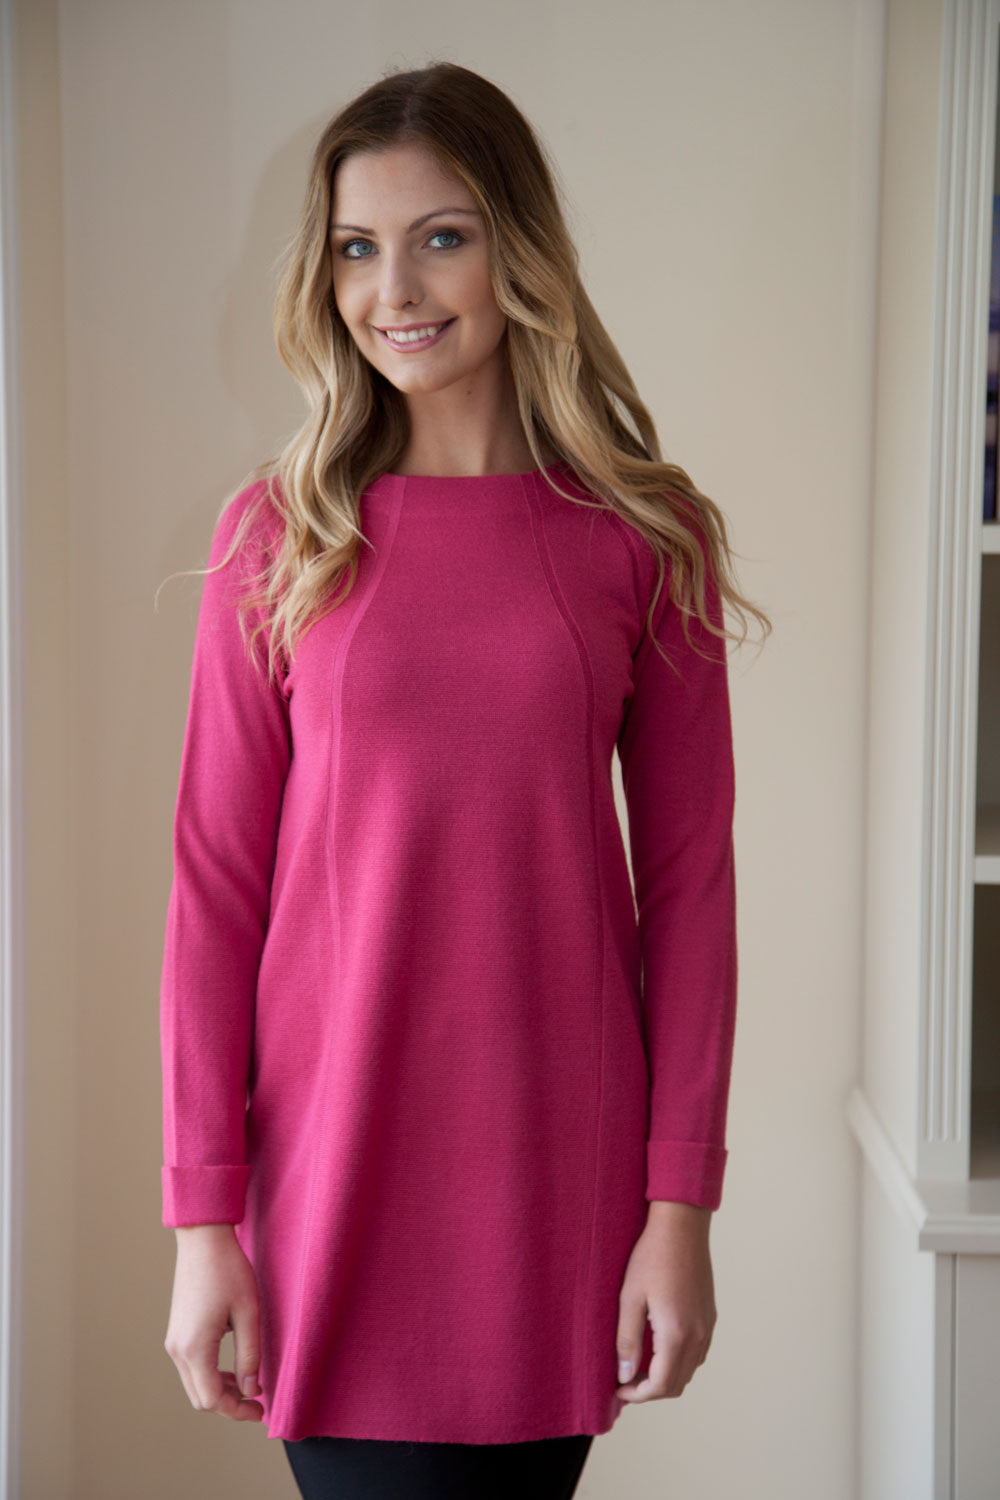 Ping Pong Raglan Slv A-Line Tunic Dress